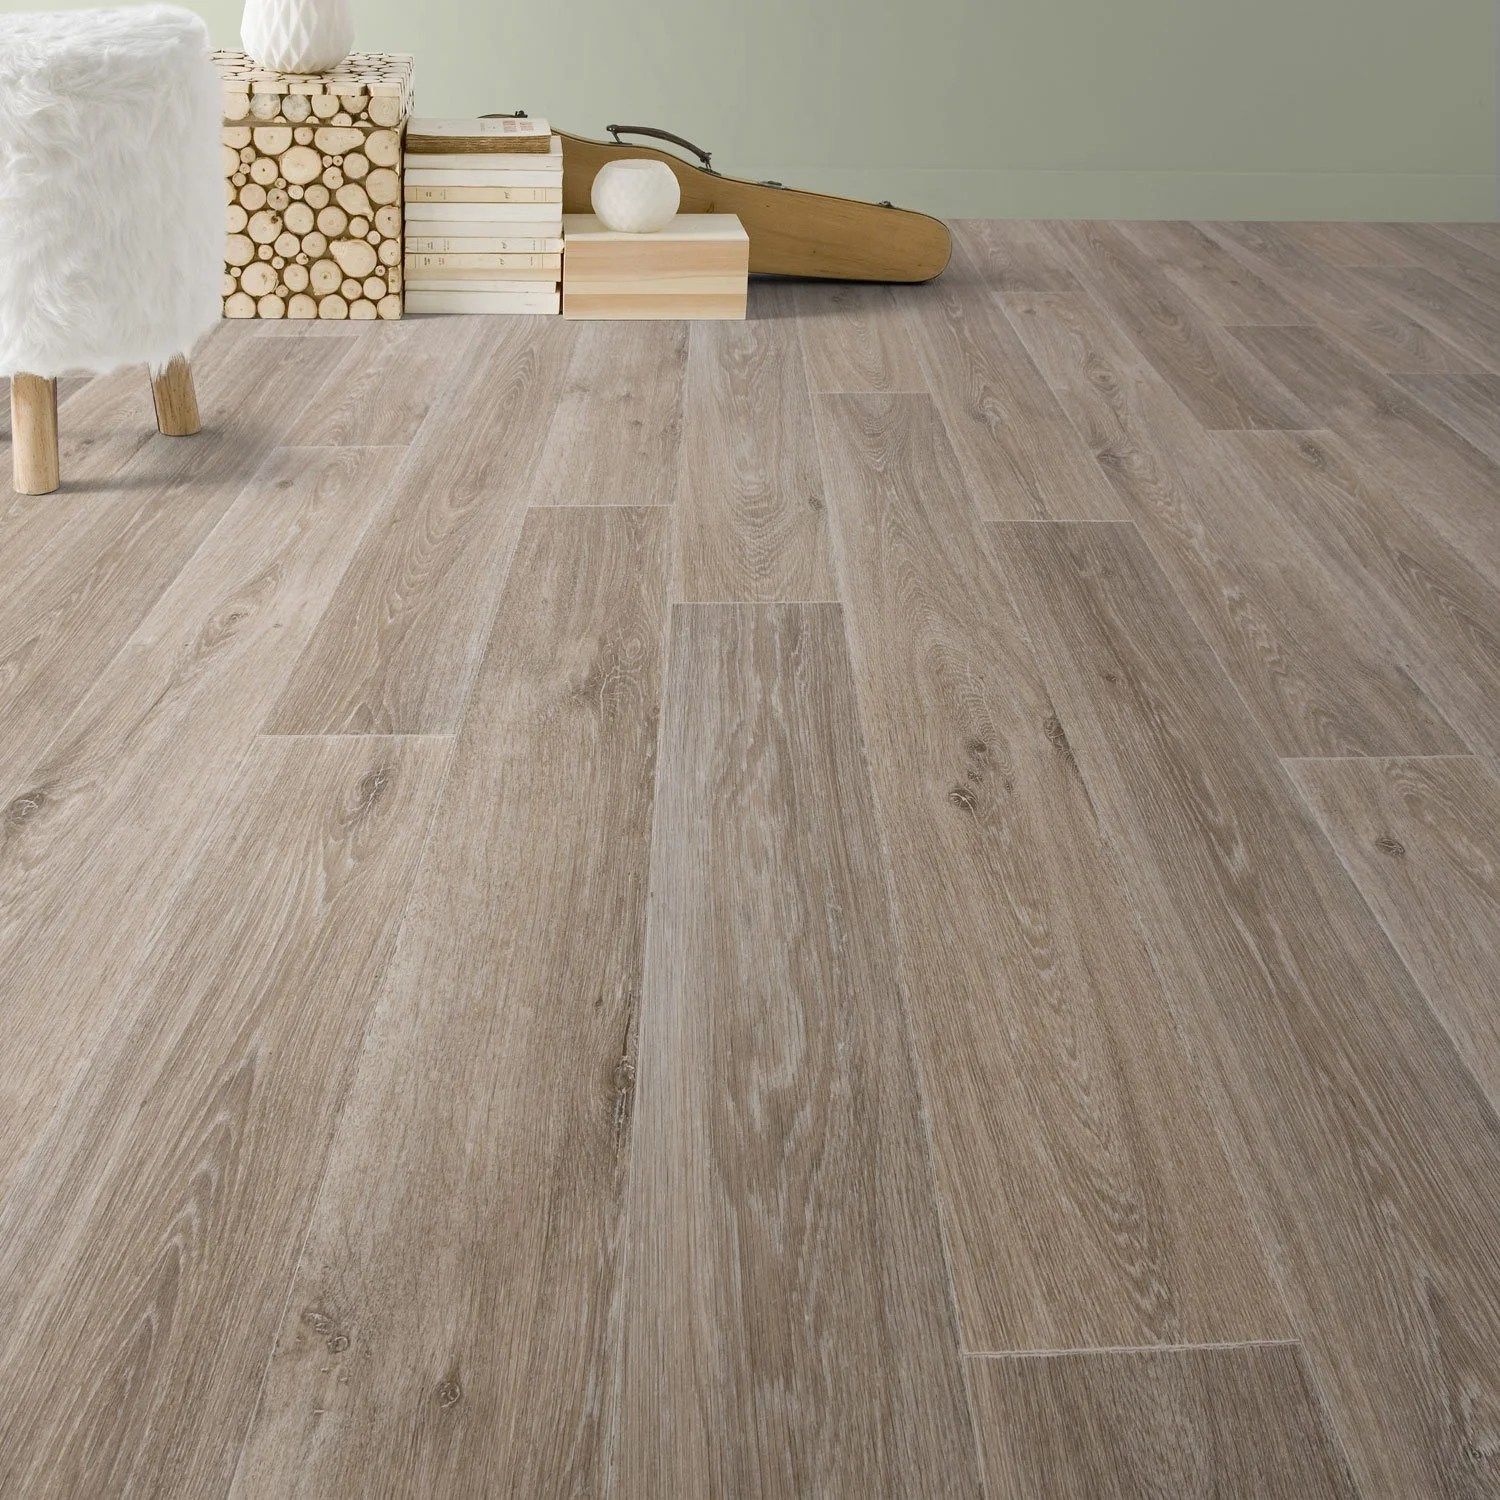 Gerflor Harbor Blue Sol Pvc Marron Noma Nature Gerflor Texline Hqr L 4 M